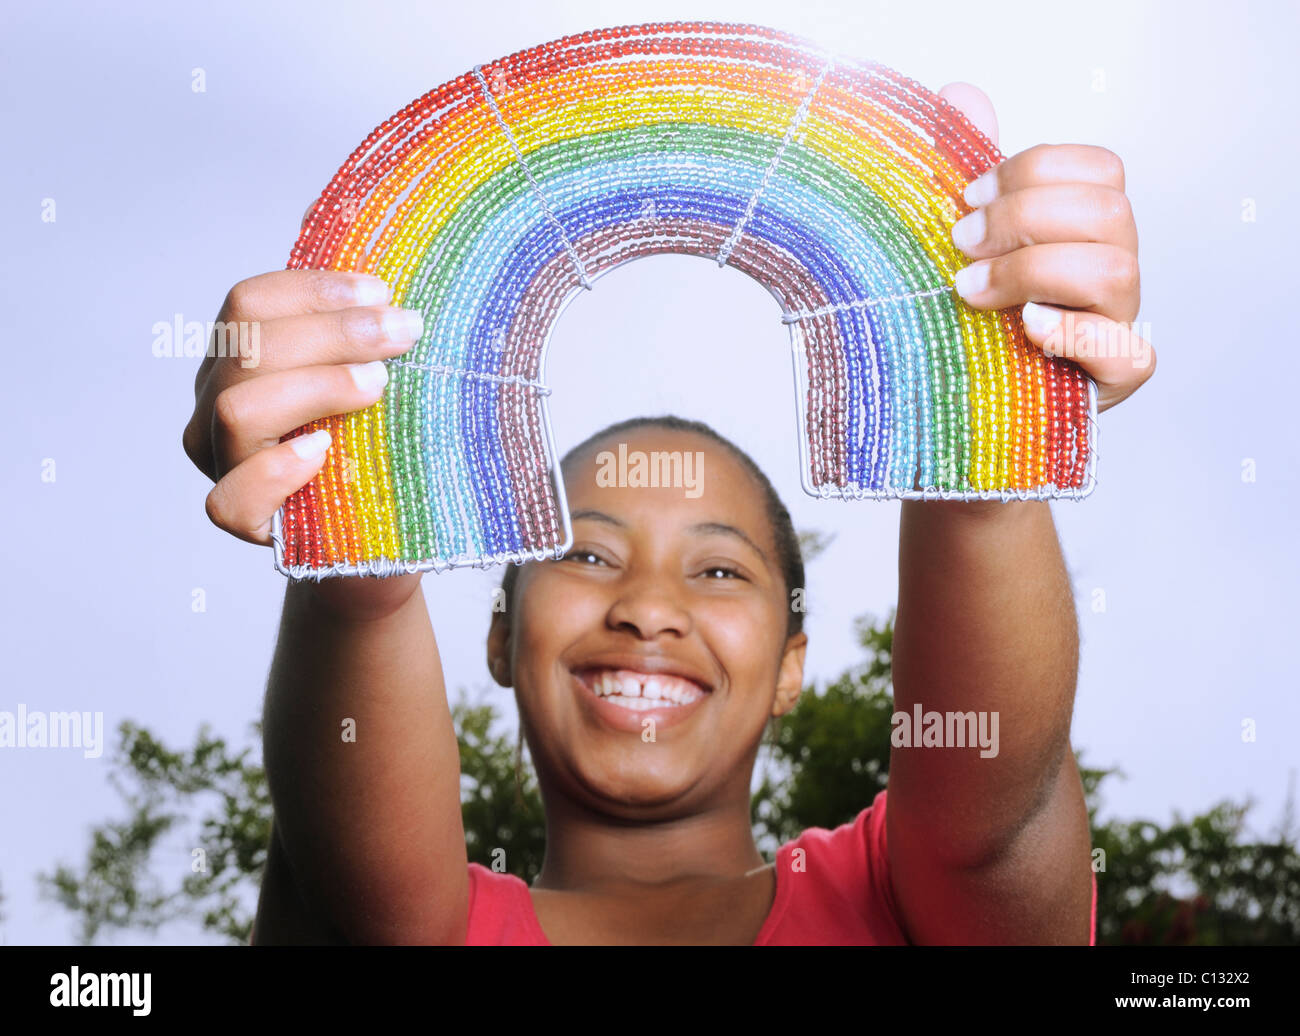 Teenage girl holding up a beaded rainbow. Cape Town, South Africa - Stock Image